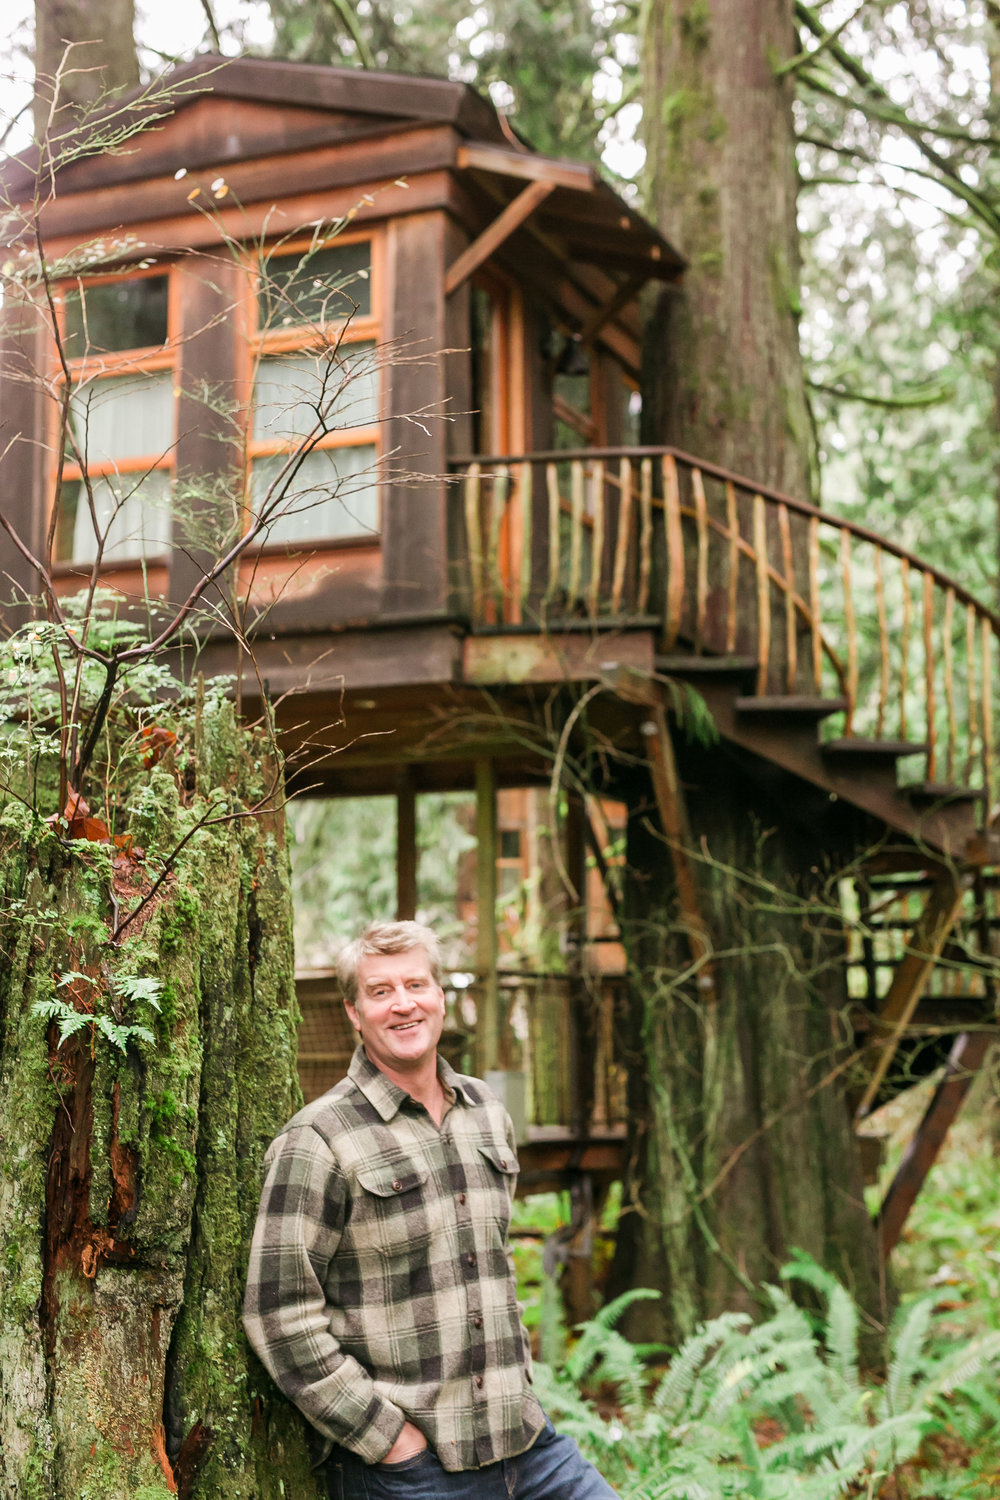 Pete Nelson, Master Treehouse Builder and star of the TV show Treehouse Masters has created special spots for people among the trees at Treehouse Point, 25 miles east of Seattle. (Photo Credit Nelson Treehouse and Supply )